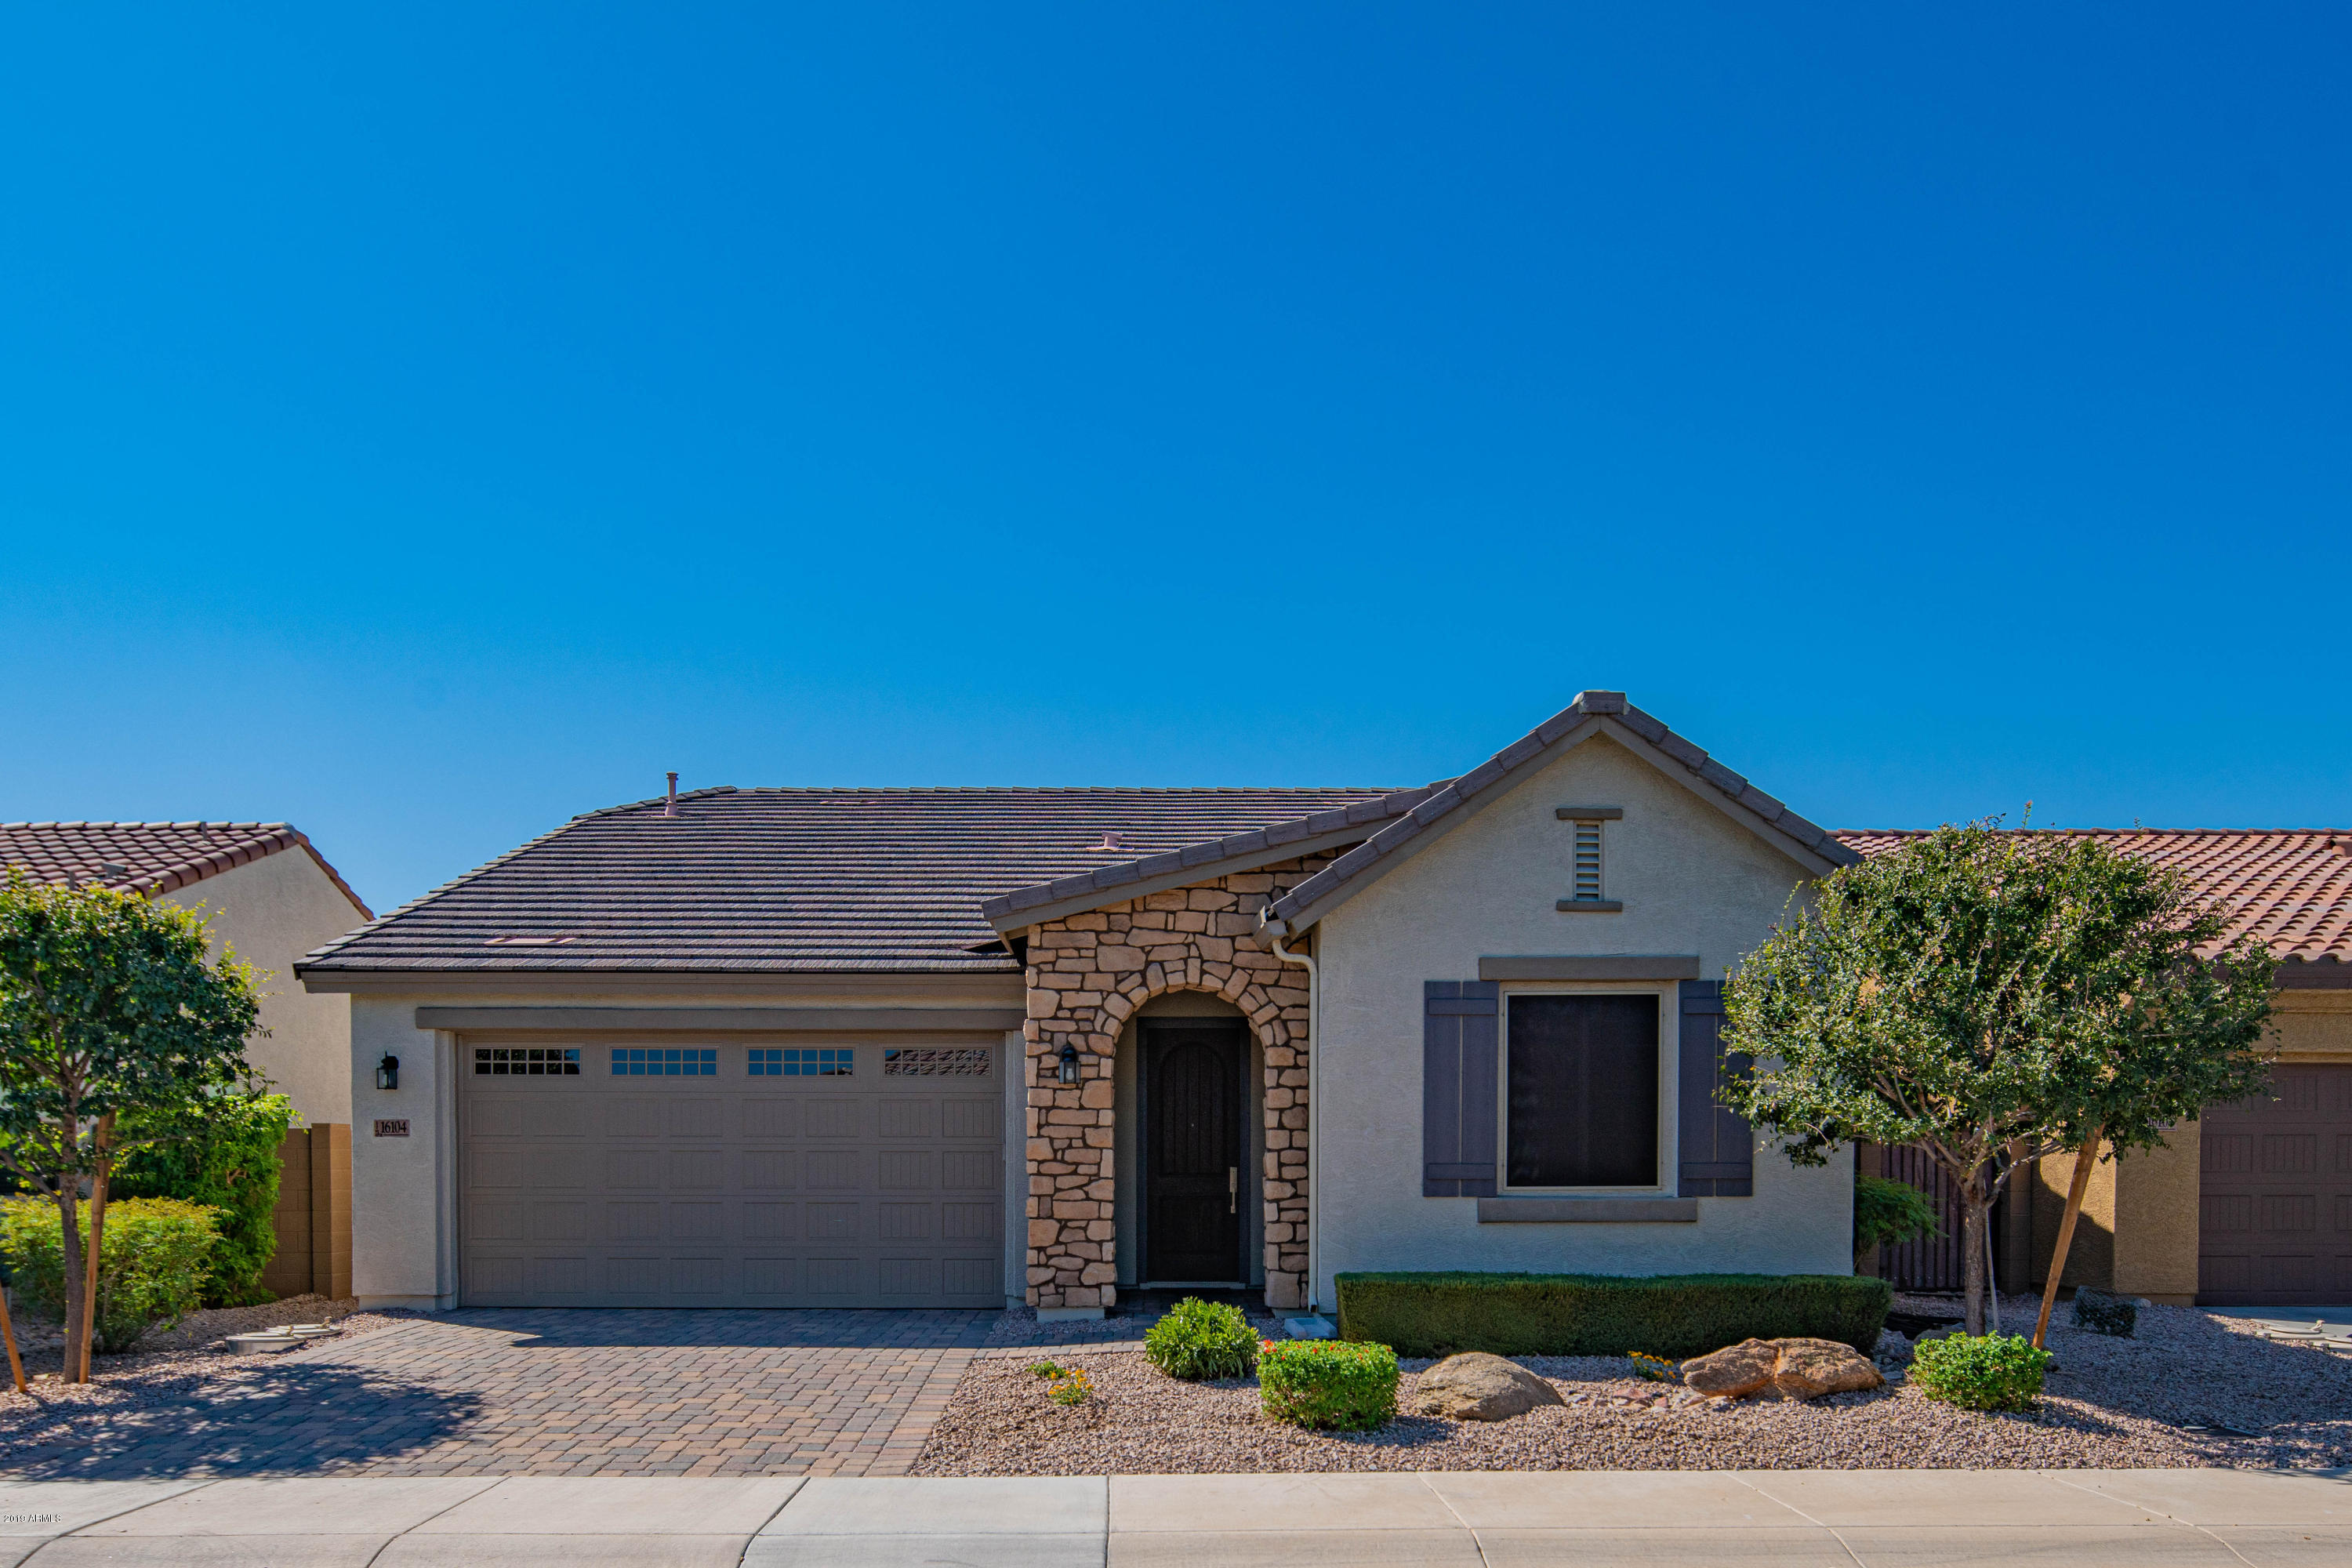 Photo of 16104 N 109th Avenue, Sun City, AZ 85351